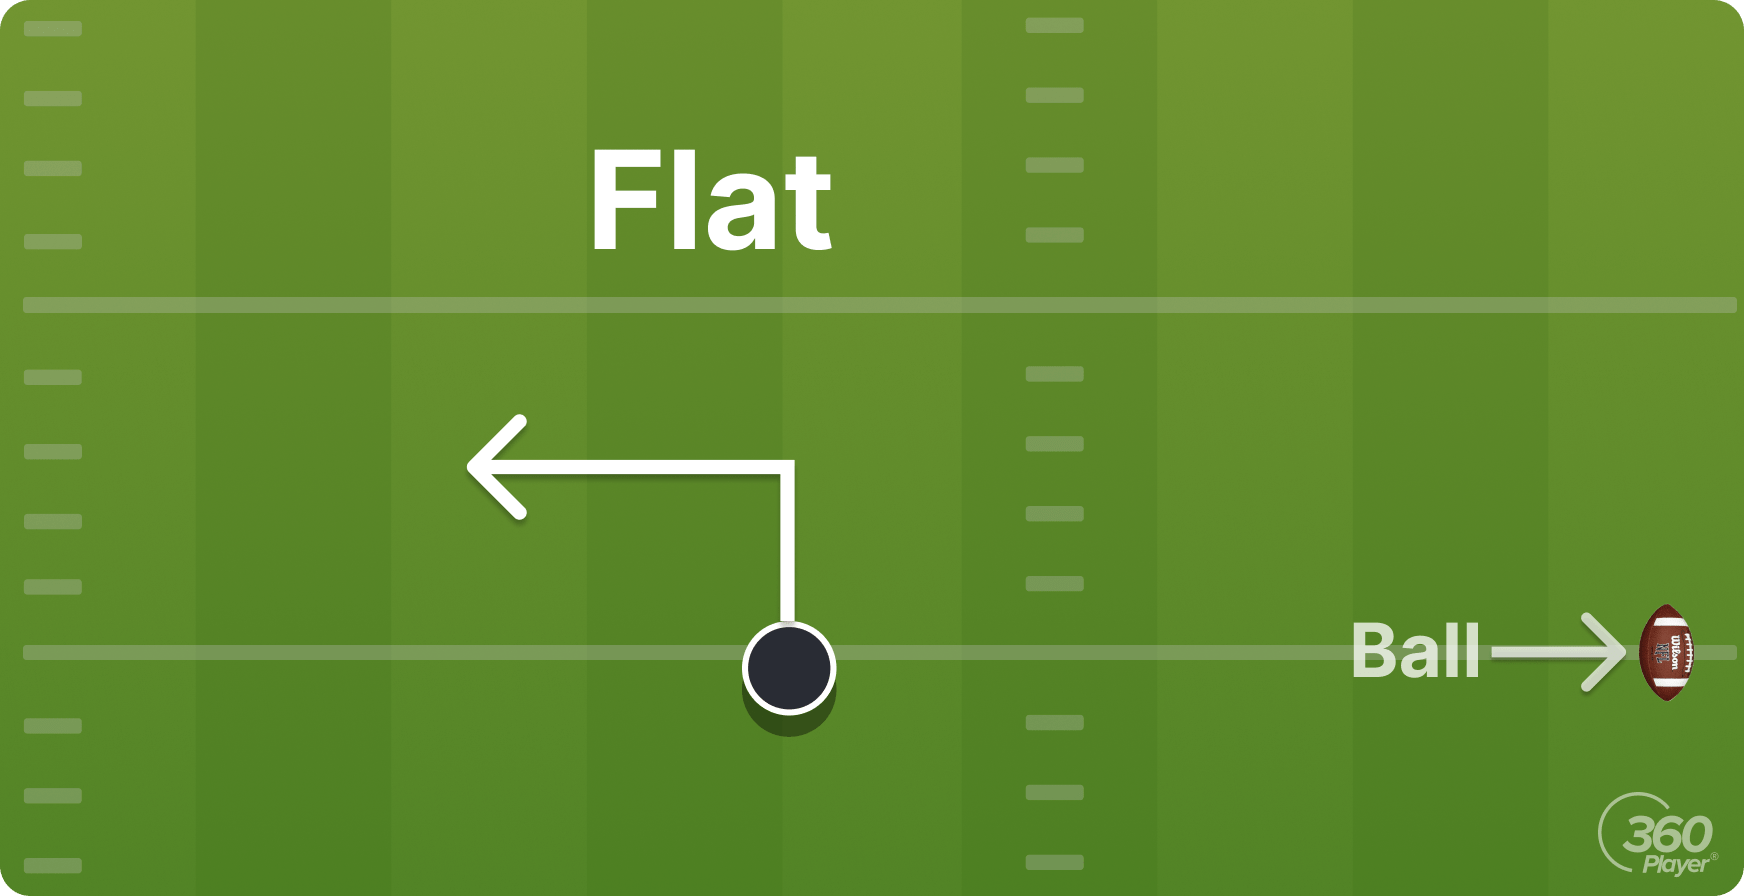 Flat Route